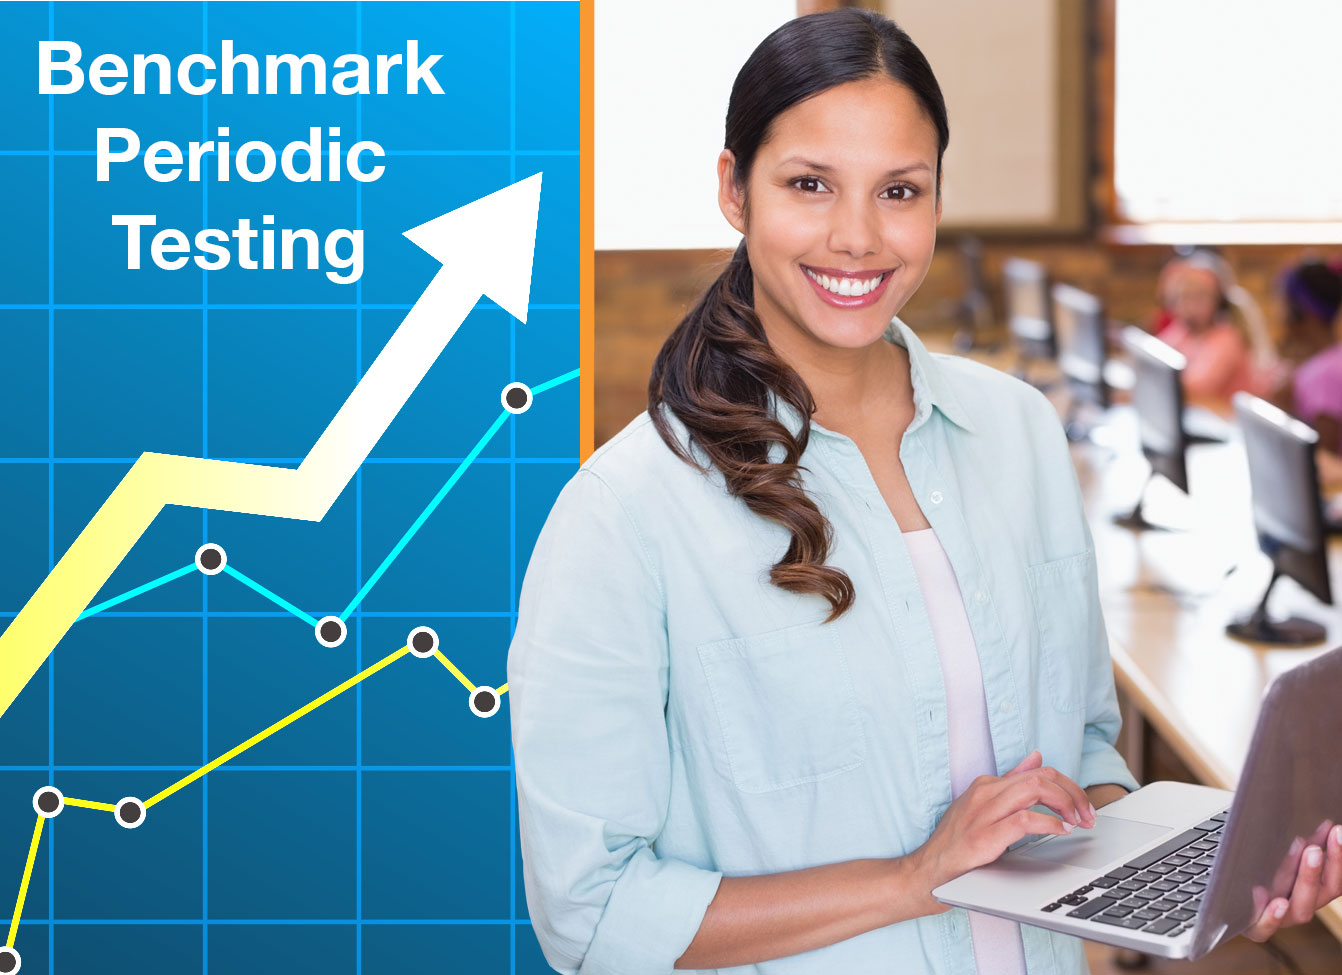 Benchmarking Periodics